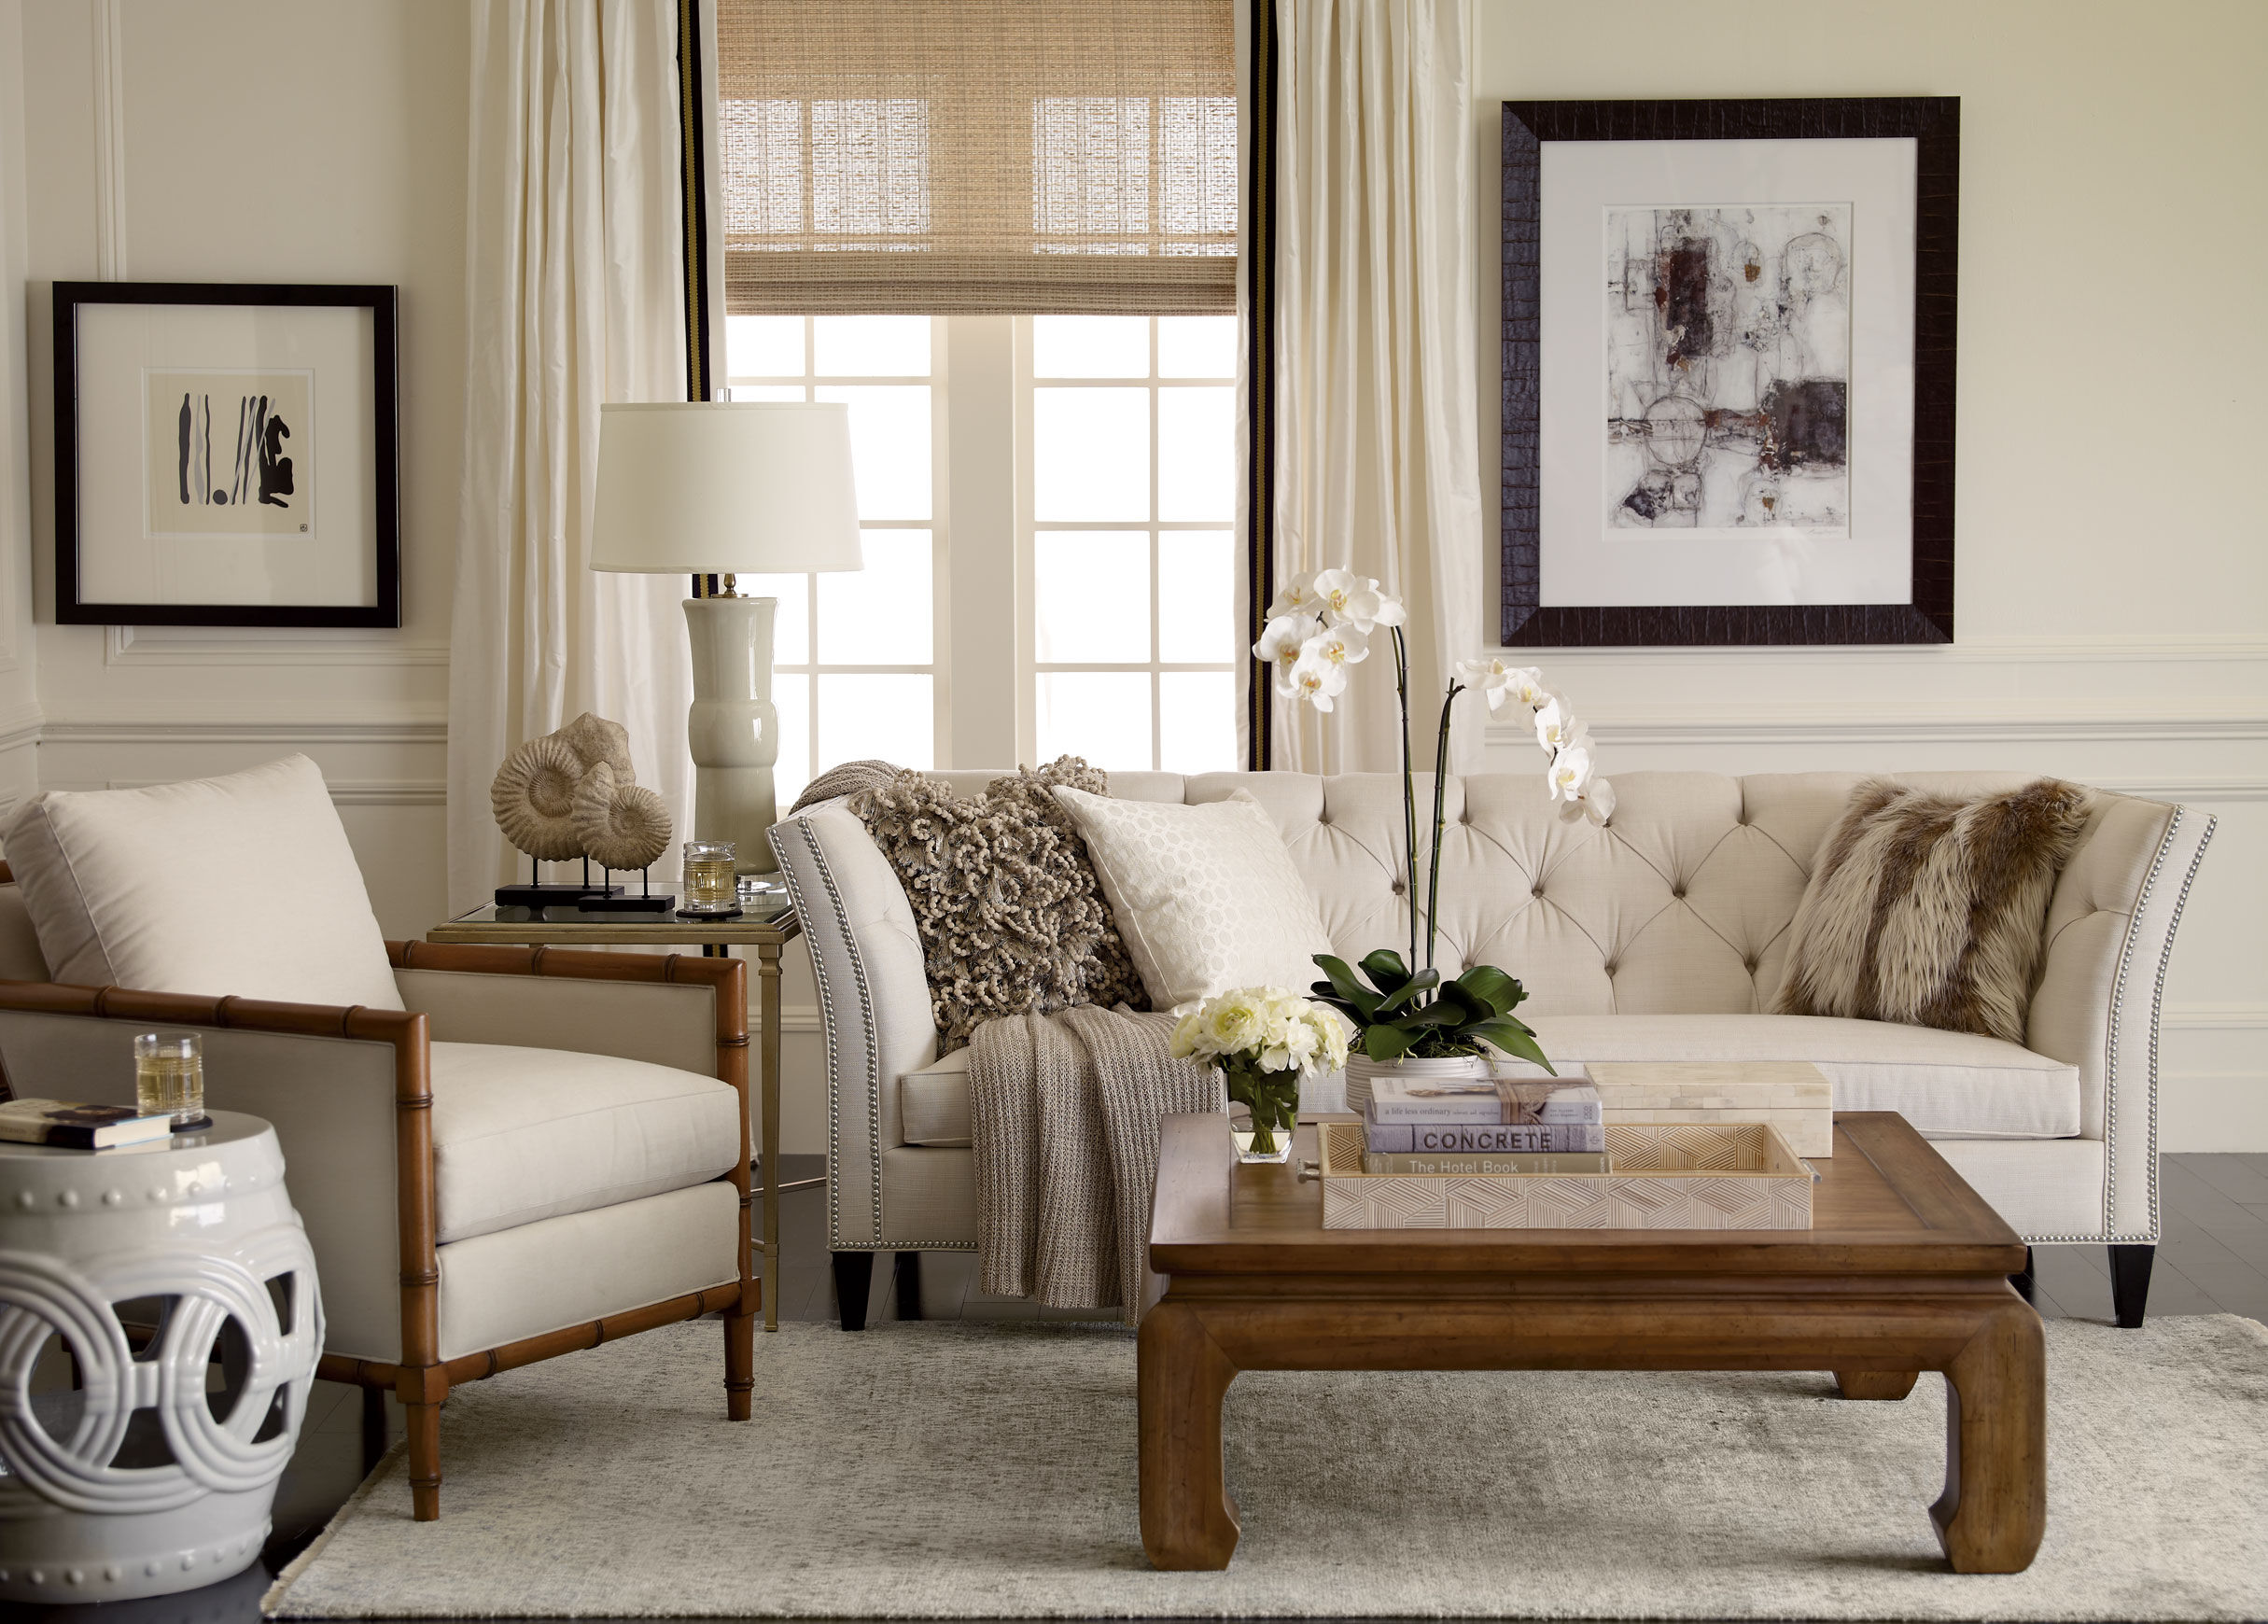 Heron End Table Side Tables Ethan Allen Jpg 1268x908 Ethan Allen Furniture  Gallery Locations